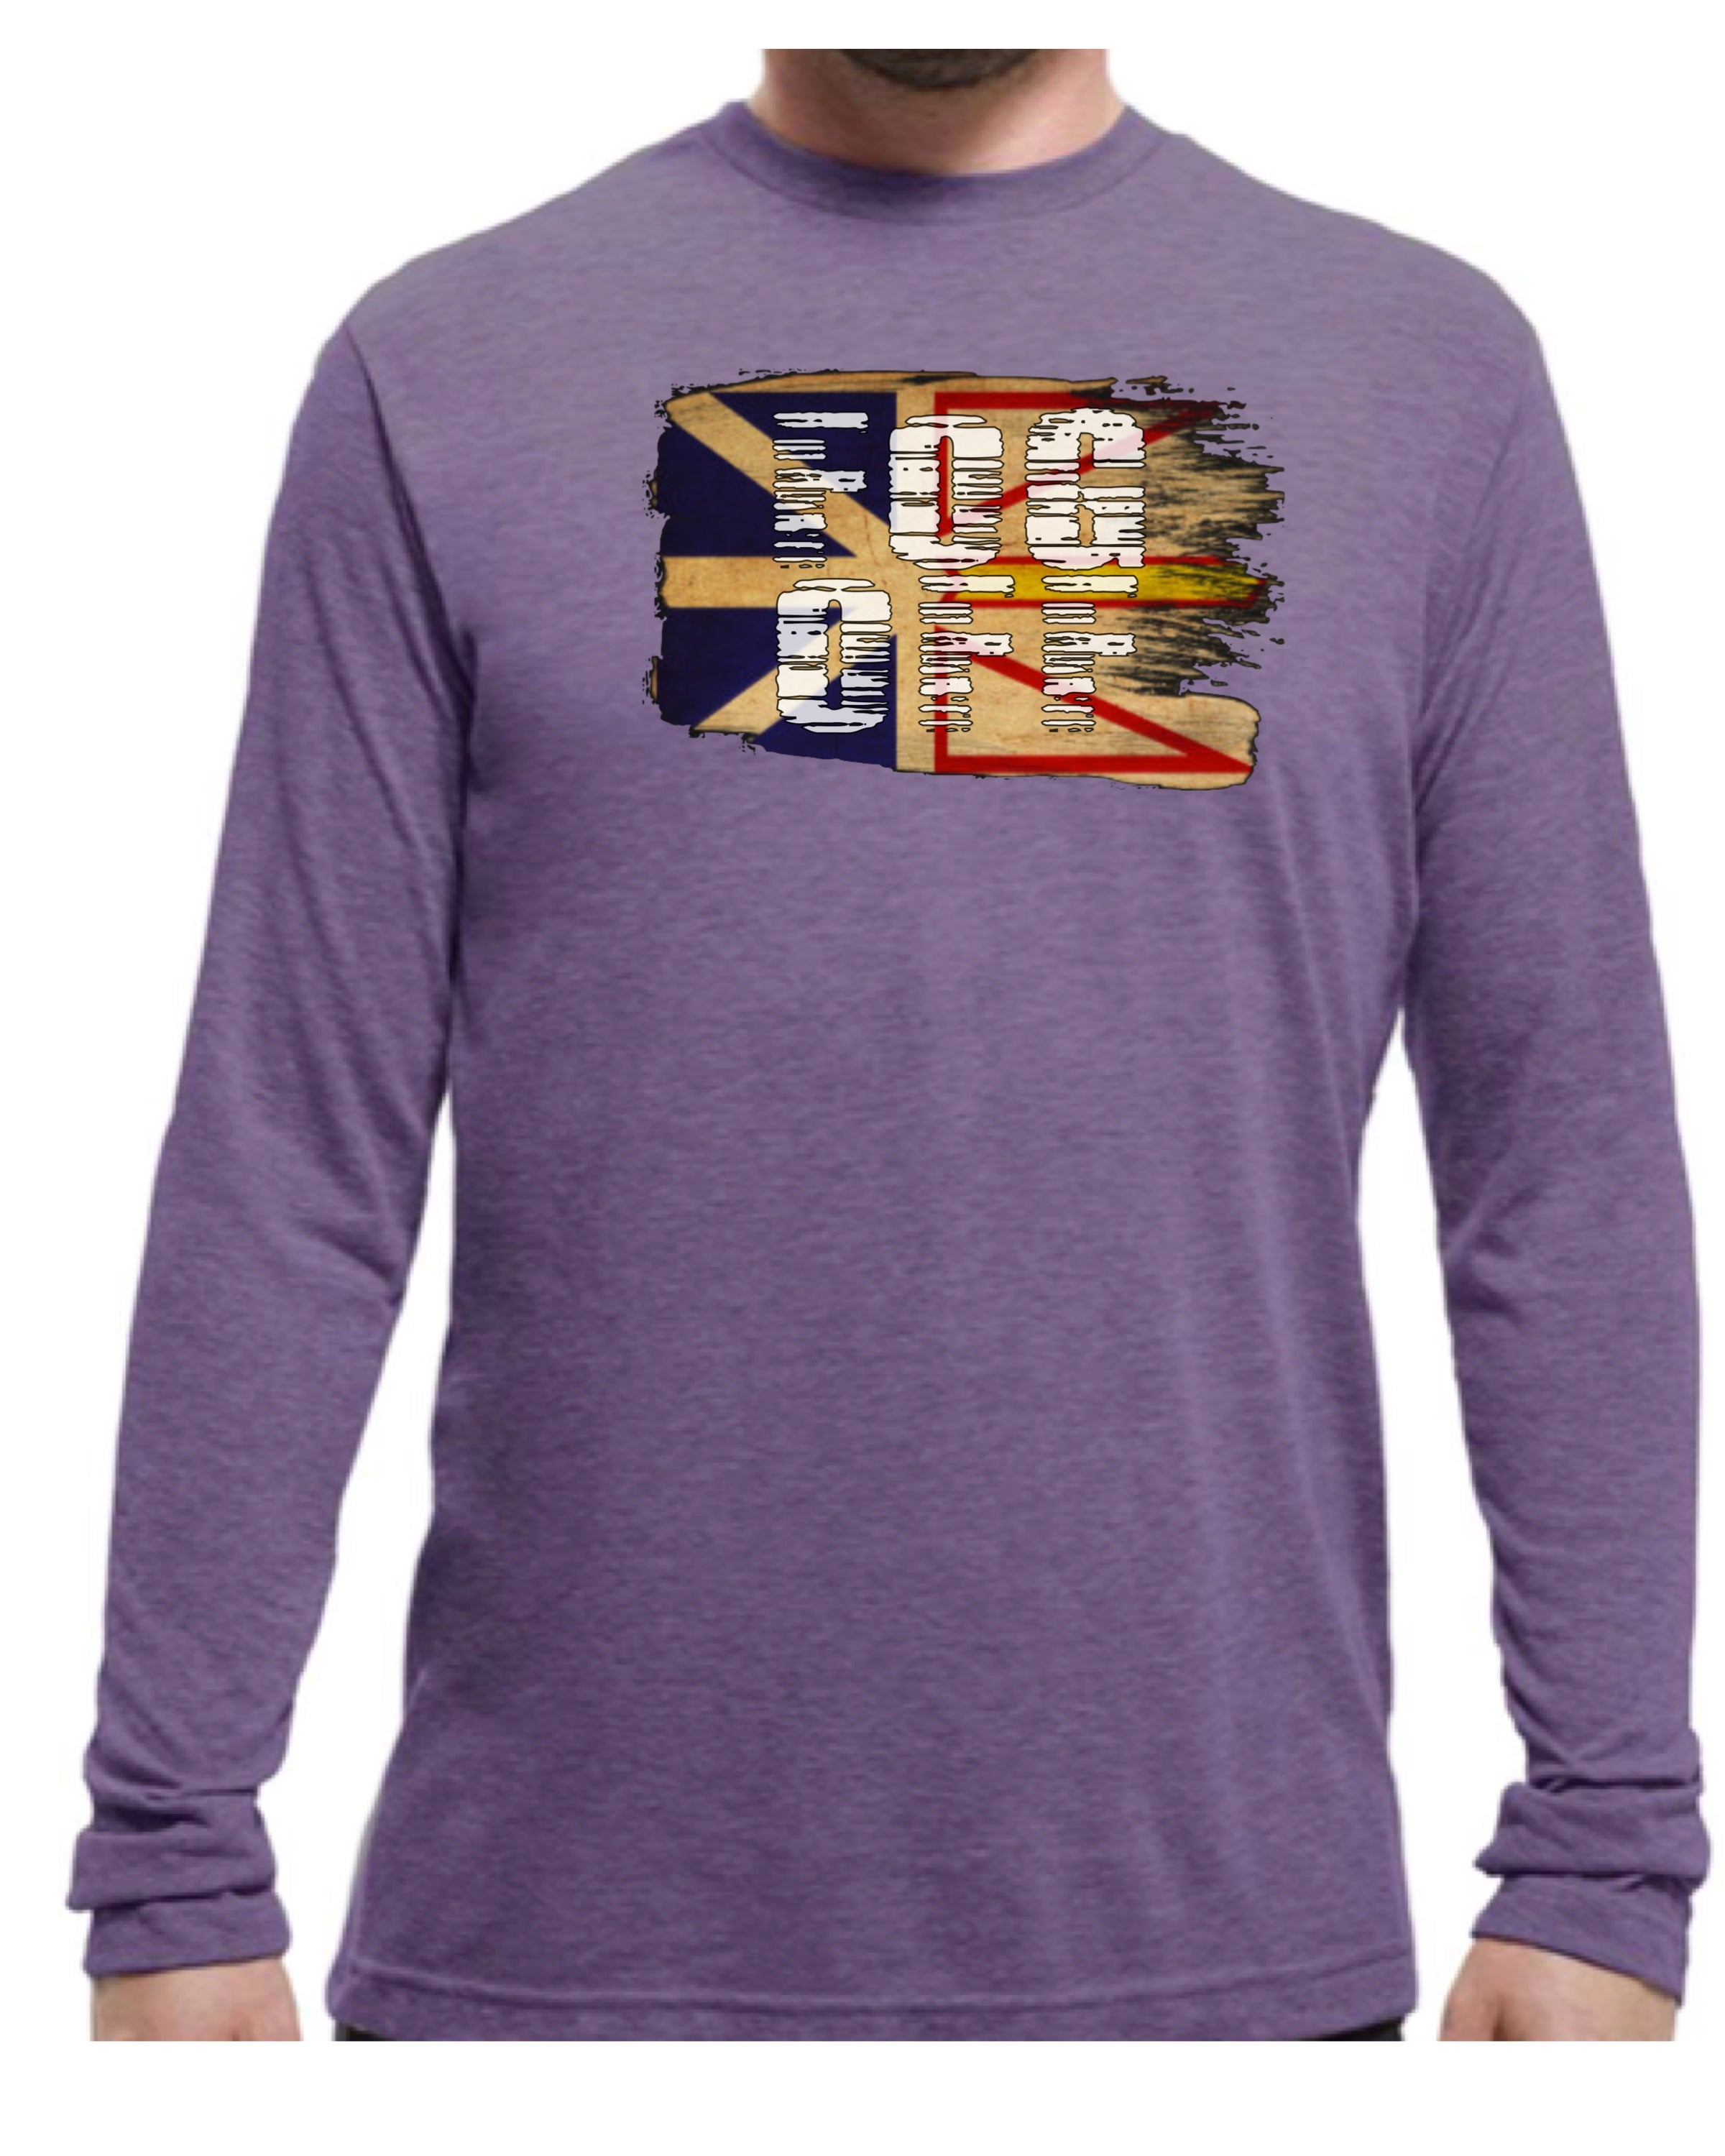 NEWFOUNDLAND LONG SLEEVE